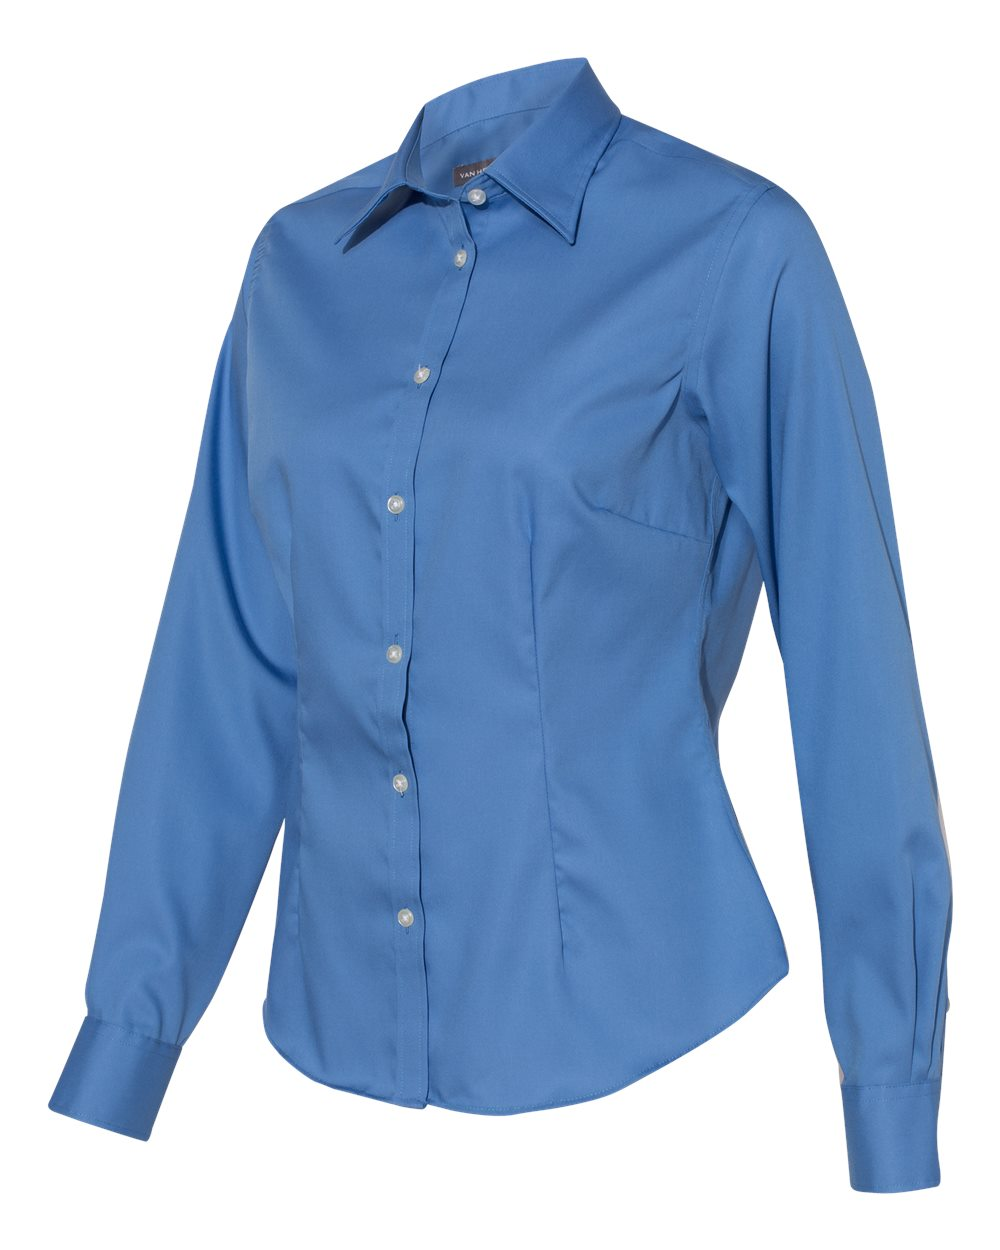 Van Heusen 13V0460 - Women's Ultimate Non-Iron Shirt